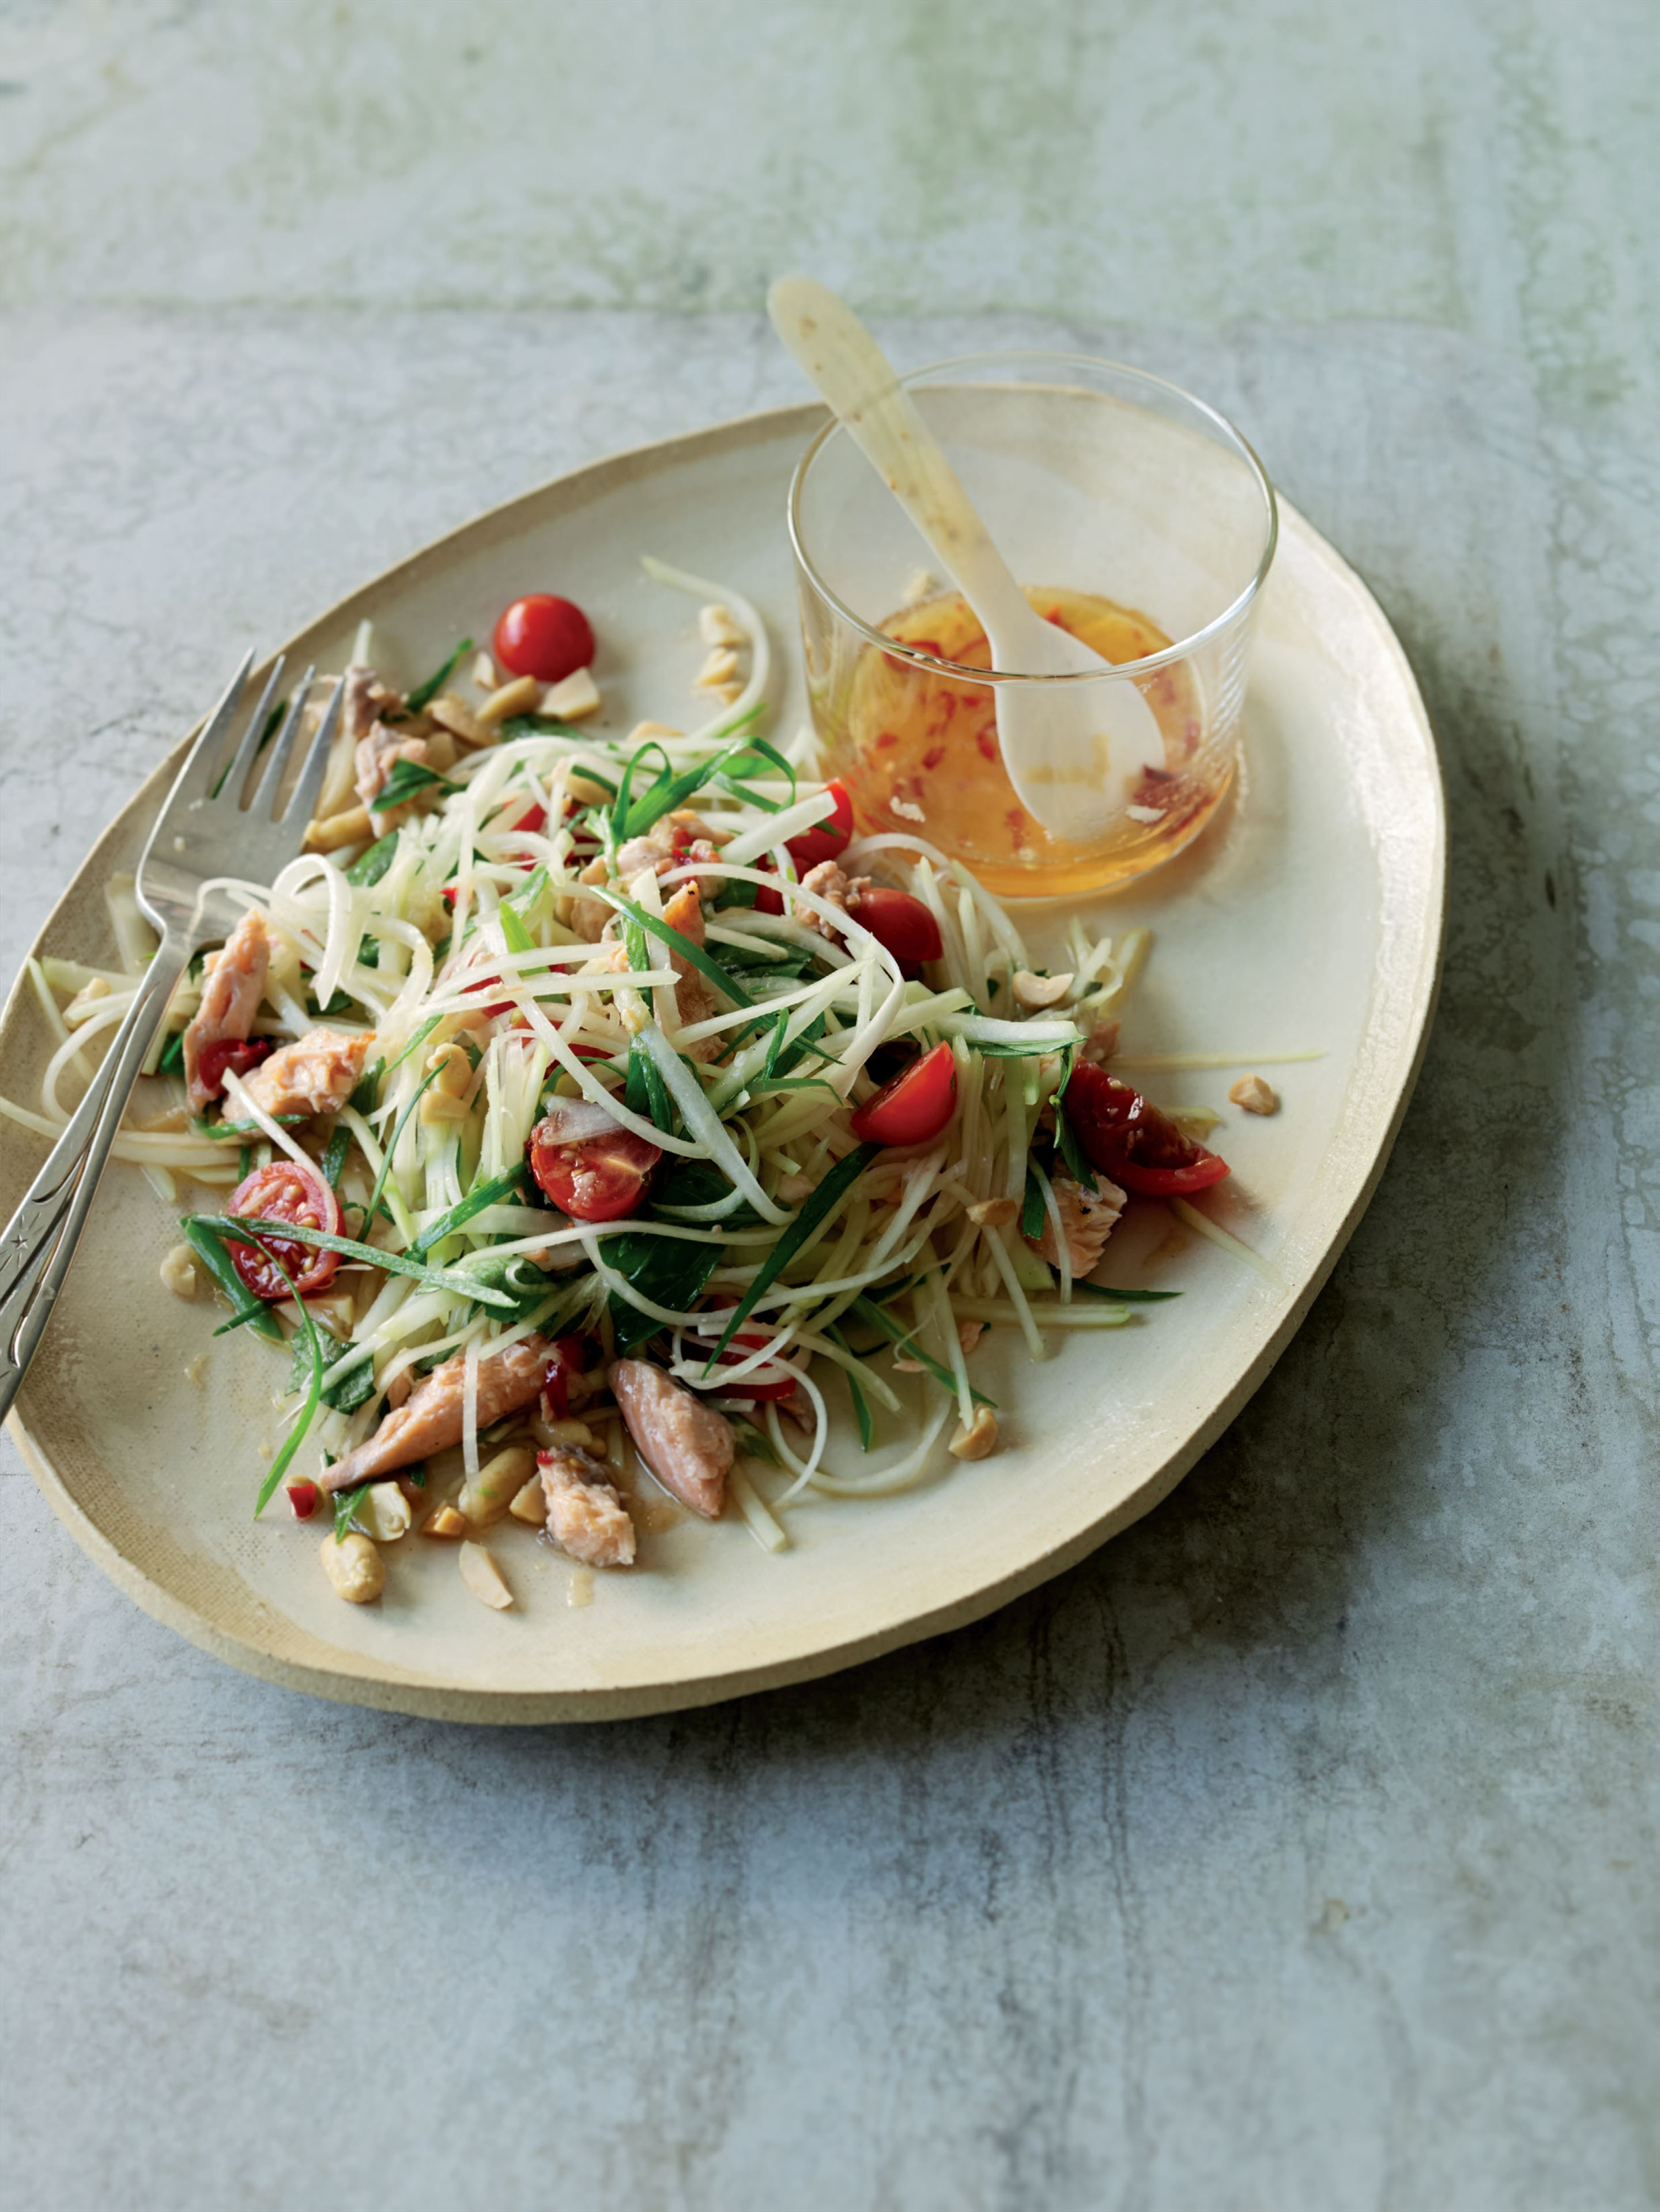 Thai green papaya salad with trout